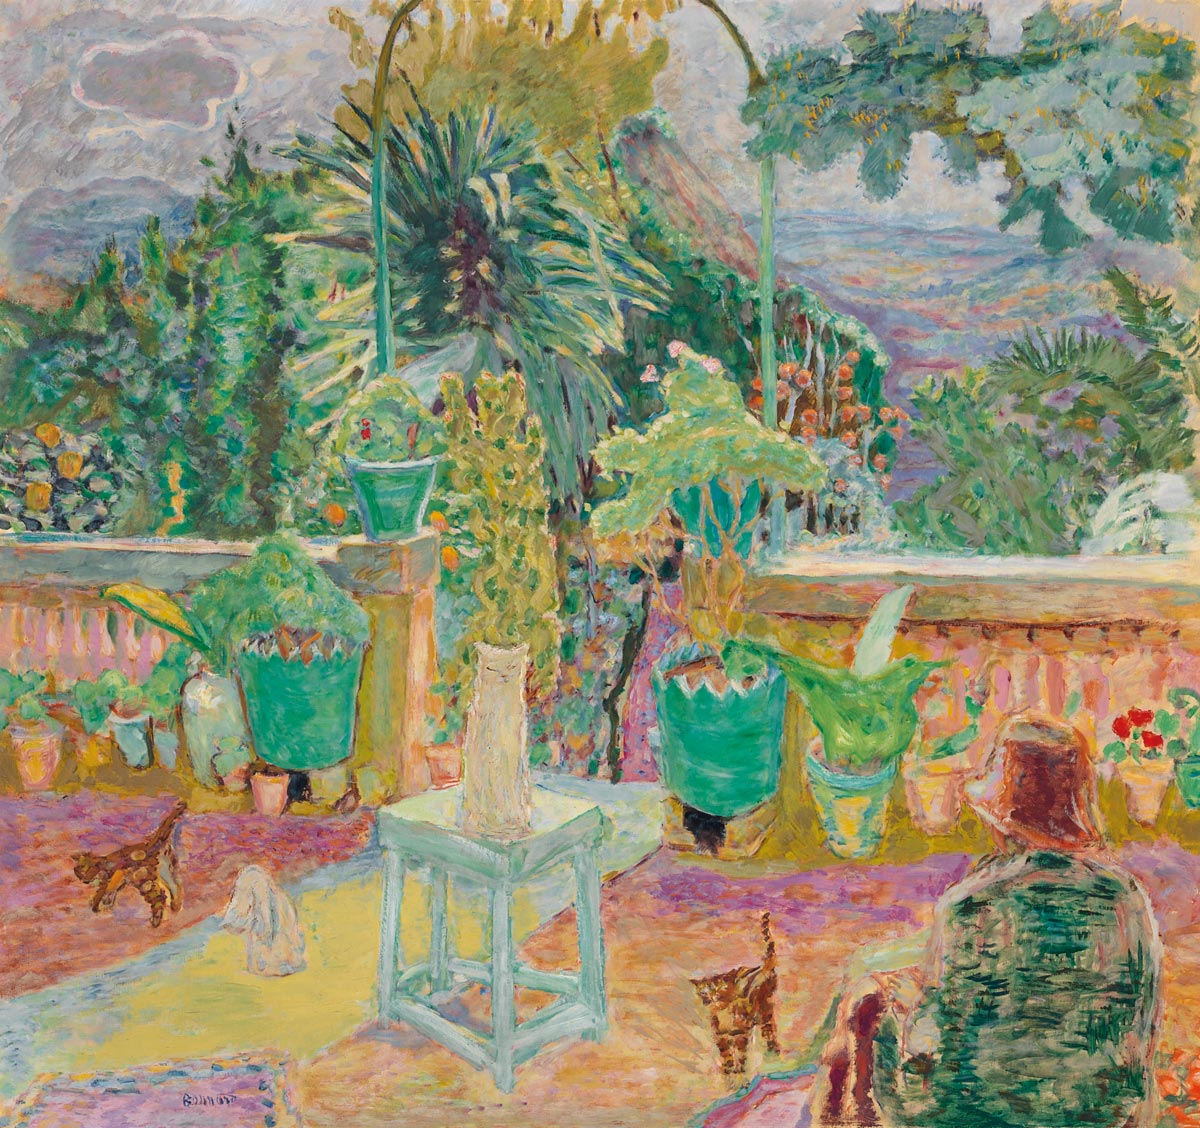 Pierre Bonnard (1867-1947), La Terrasse ou  Une terrasse à Grasse, 1912. Oil on canvas. 49 ¼ x 52 ⅞ in. (125.3 x 134.4 cm.). Estimate $5,000,000-8,000,000. This work is offered in the Impressionist & Modern Art Evening Sale on 13 May at Christie's in New York. The Collection of Drue Heinz